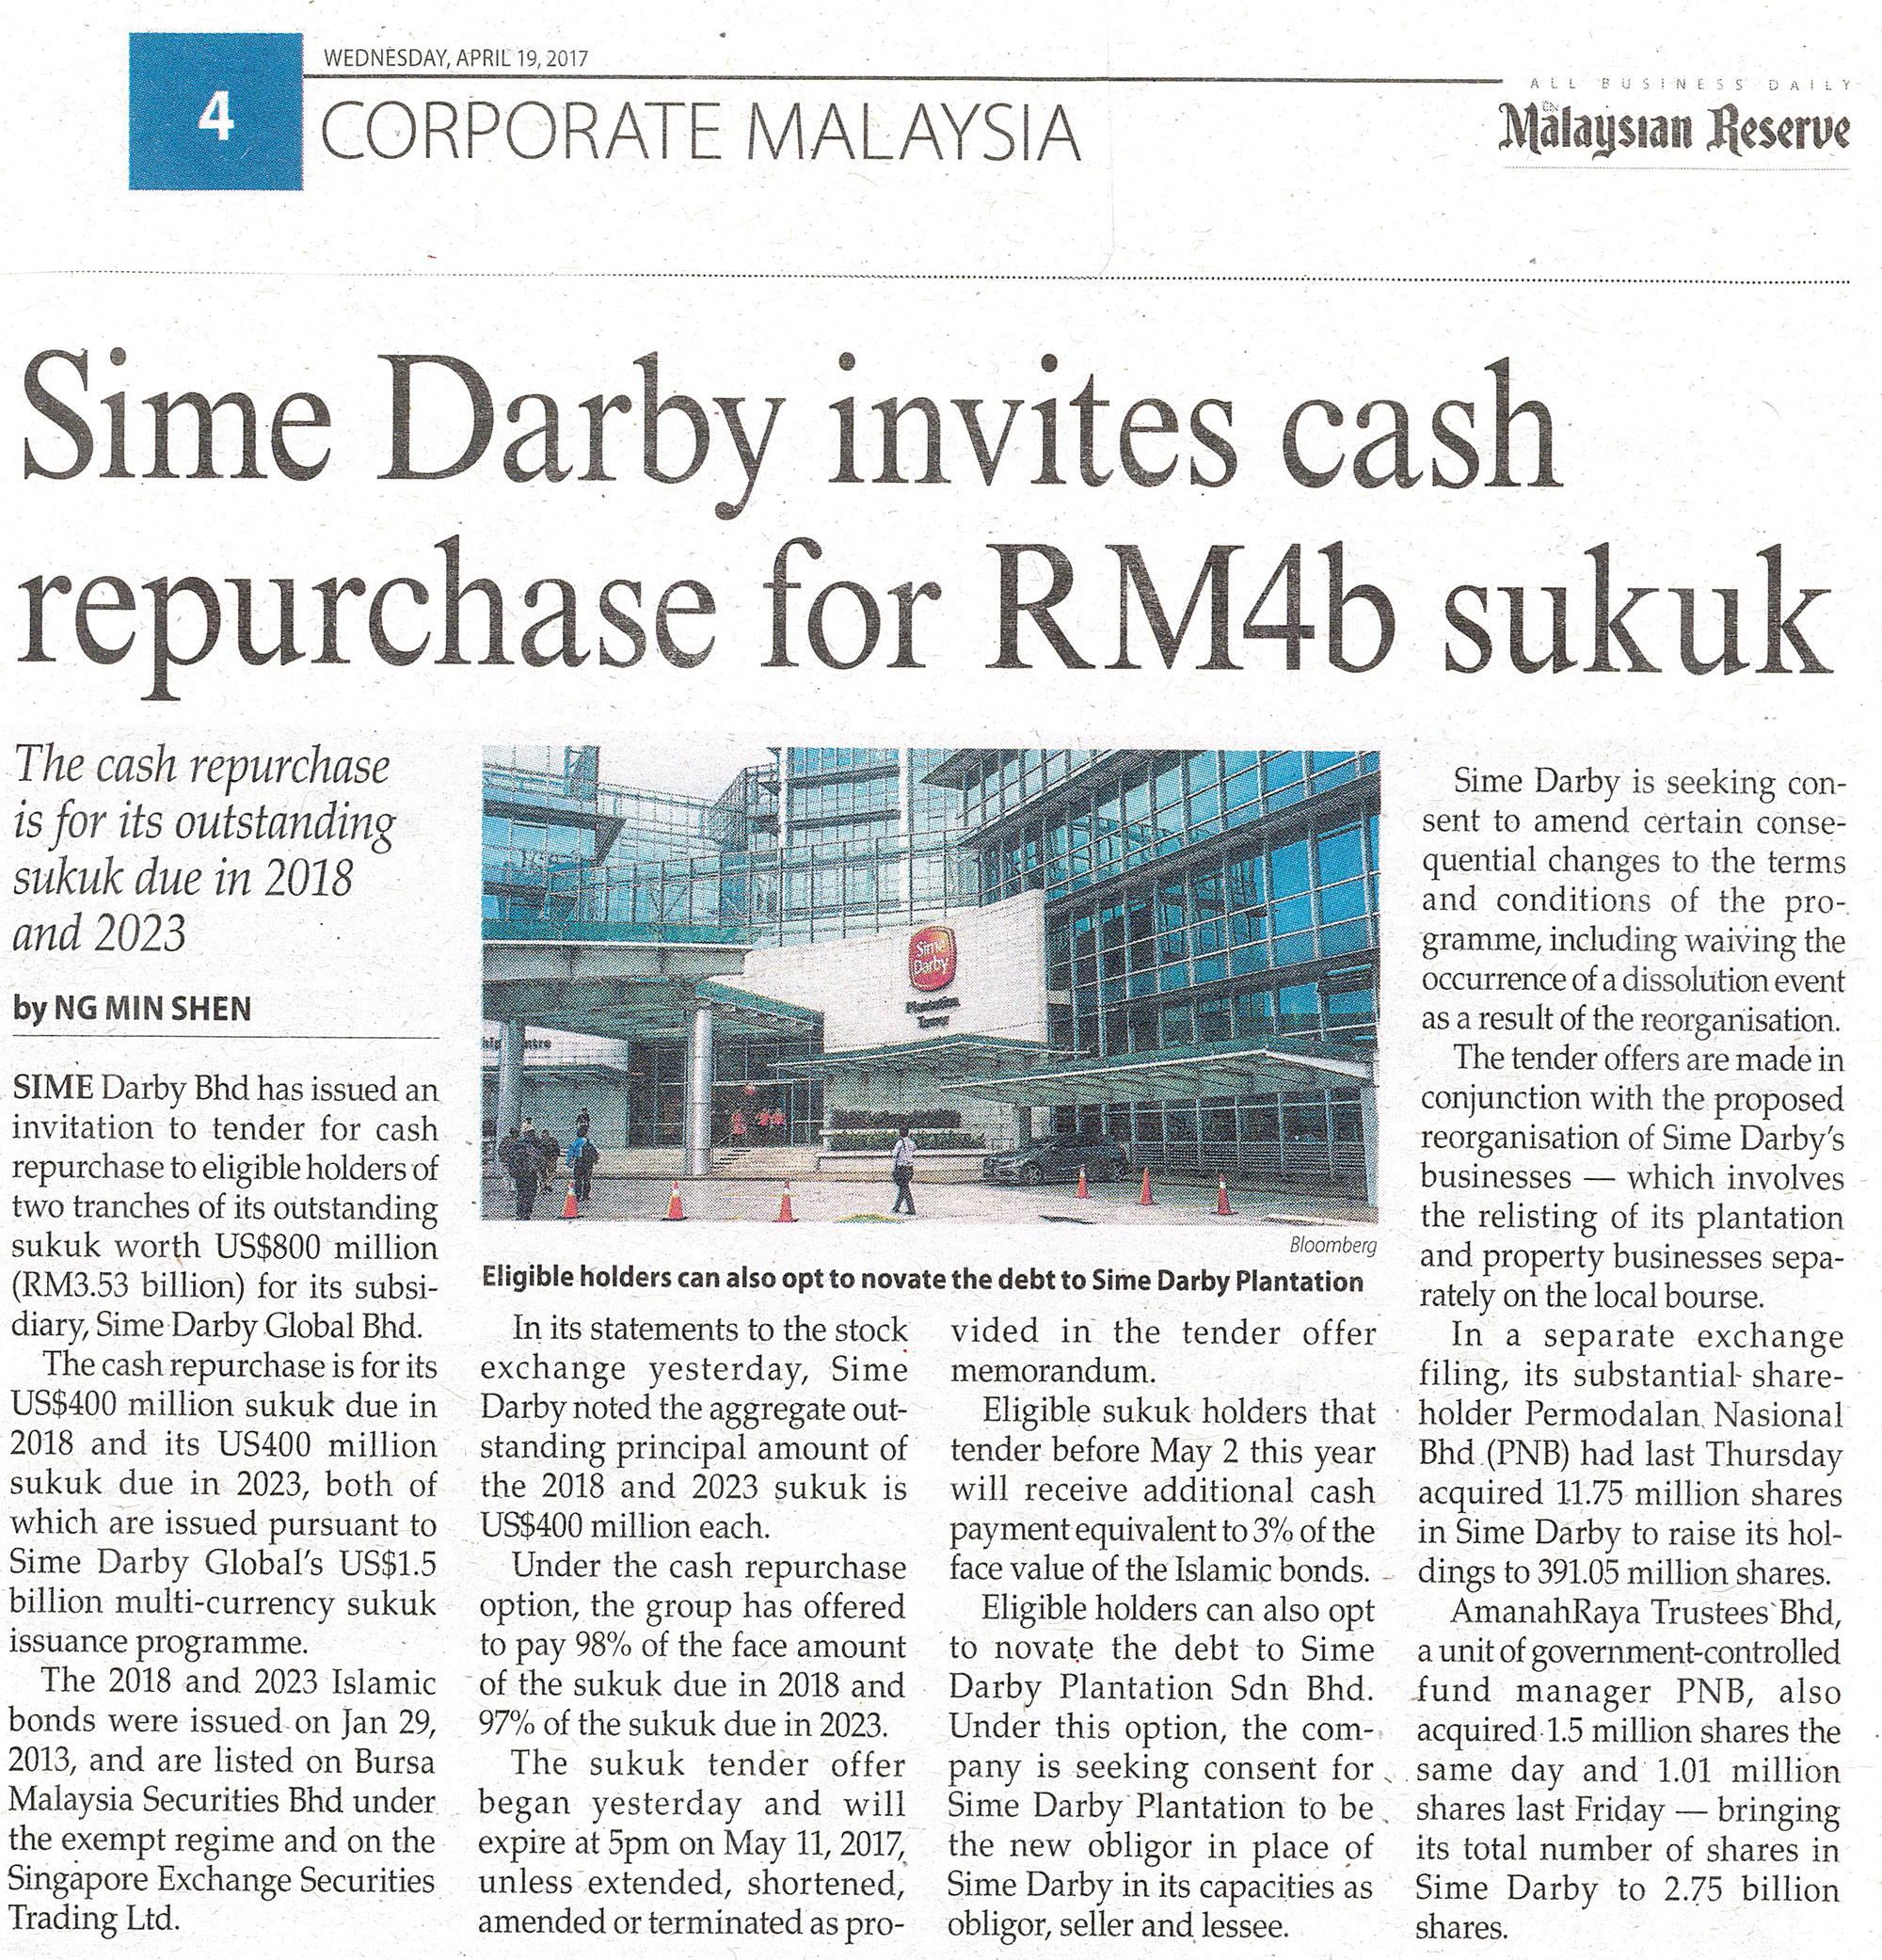 Sime Darby Bhd has issued an invitation to tender for cash repurchase to eligible holders of two tranches of its outstanding sukuk worth US$800 million for its subsidiariy, Sime Darby Global Bhd.